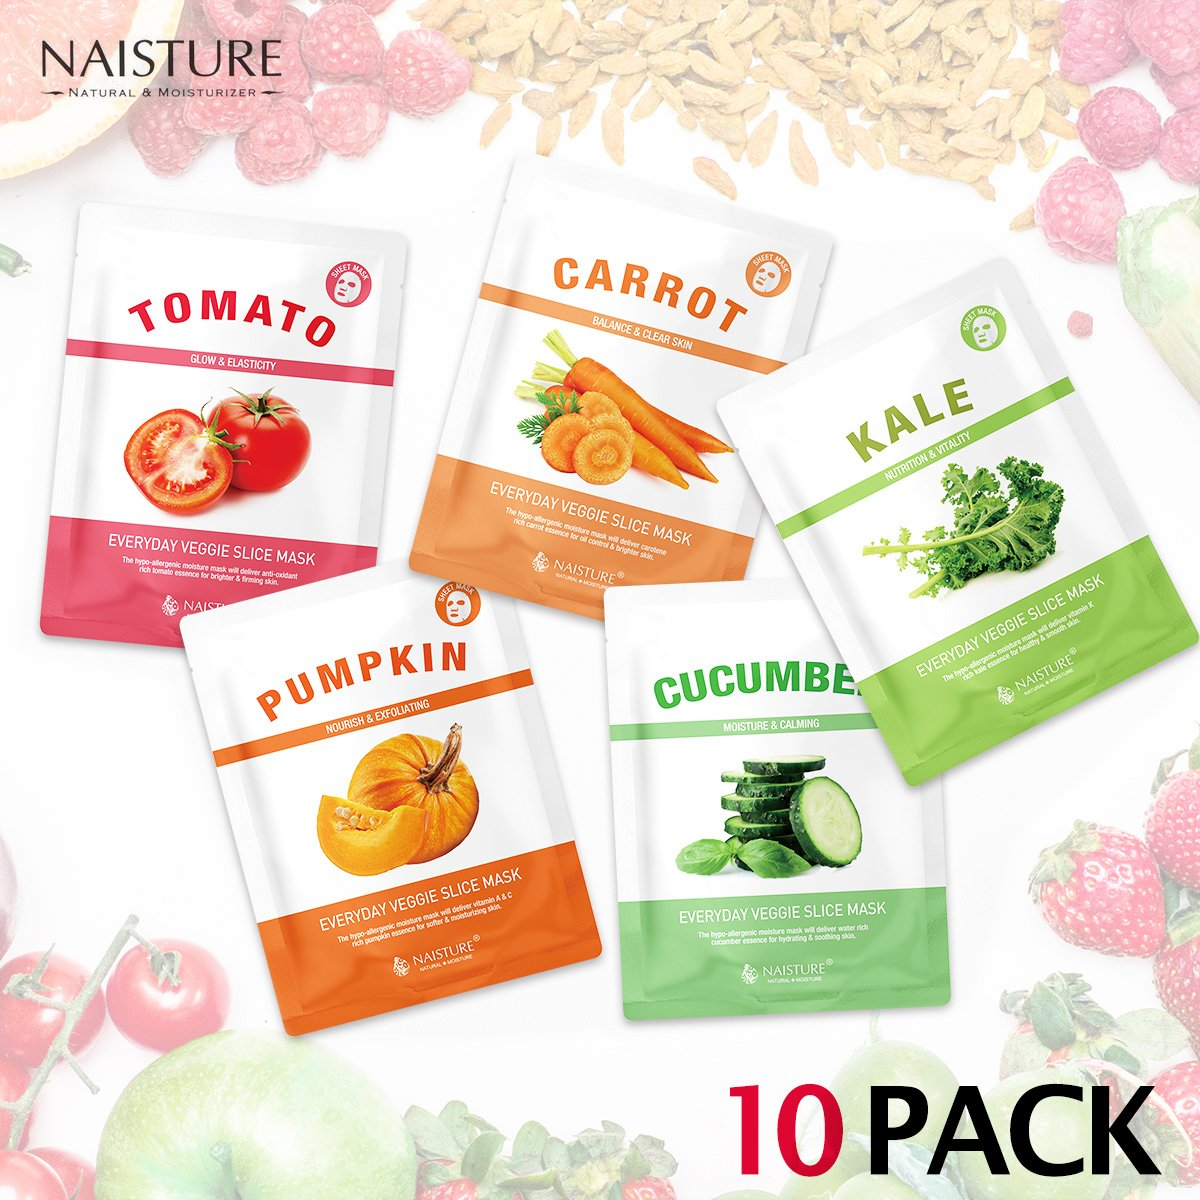 Naisture Korean Face Sheet Masks (10 Count), Fresh Vegetable Everyday Veggie Slice Full Facial Mask - Tomato, Cucumber, Carrot, Kale and Pumpkin - 10 Pack Set